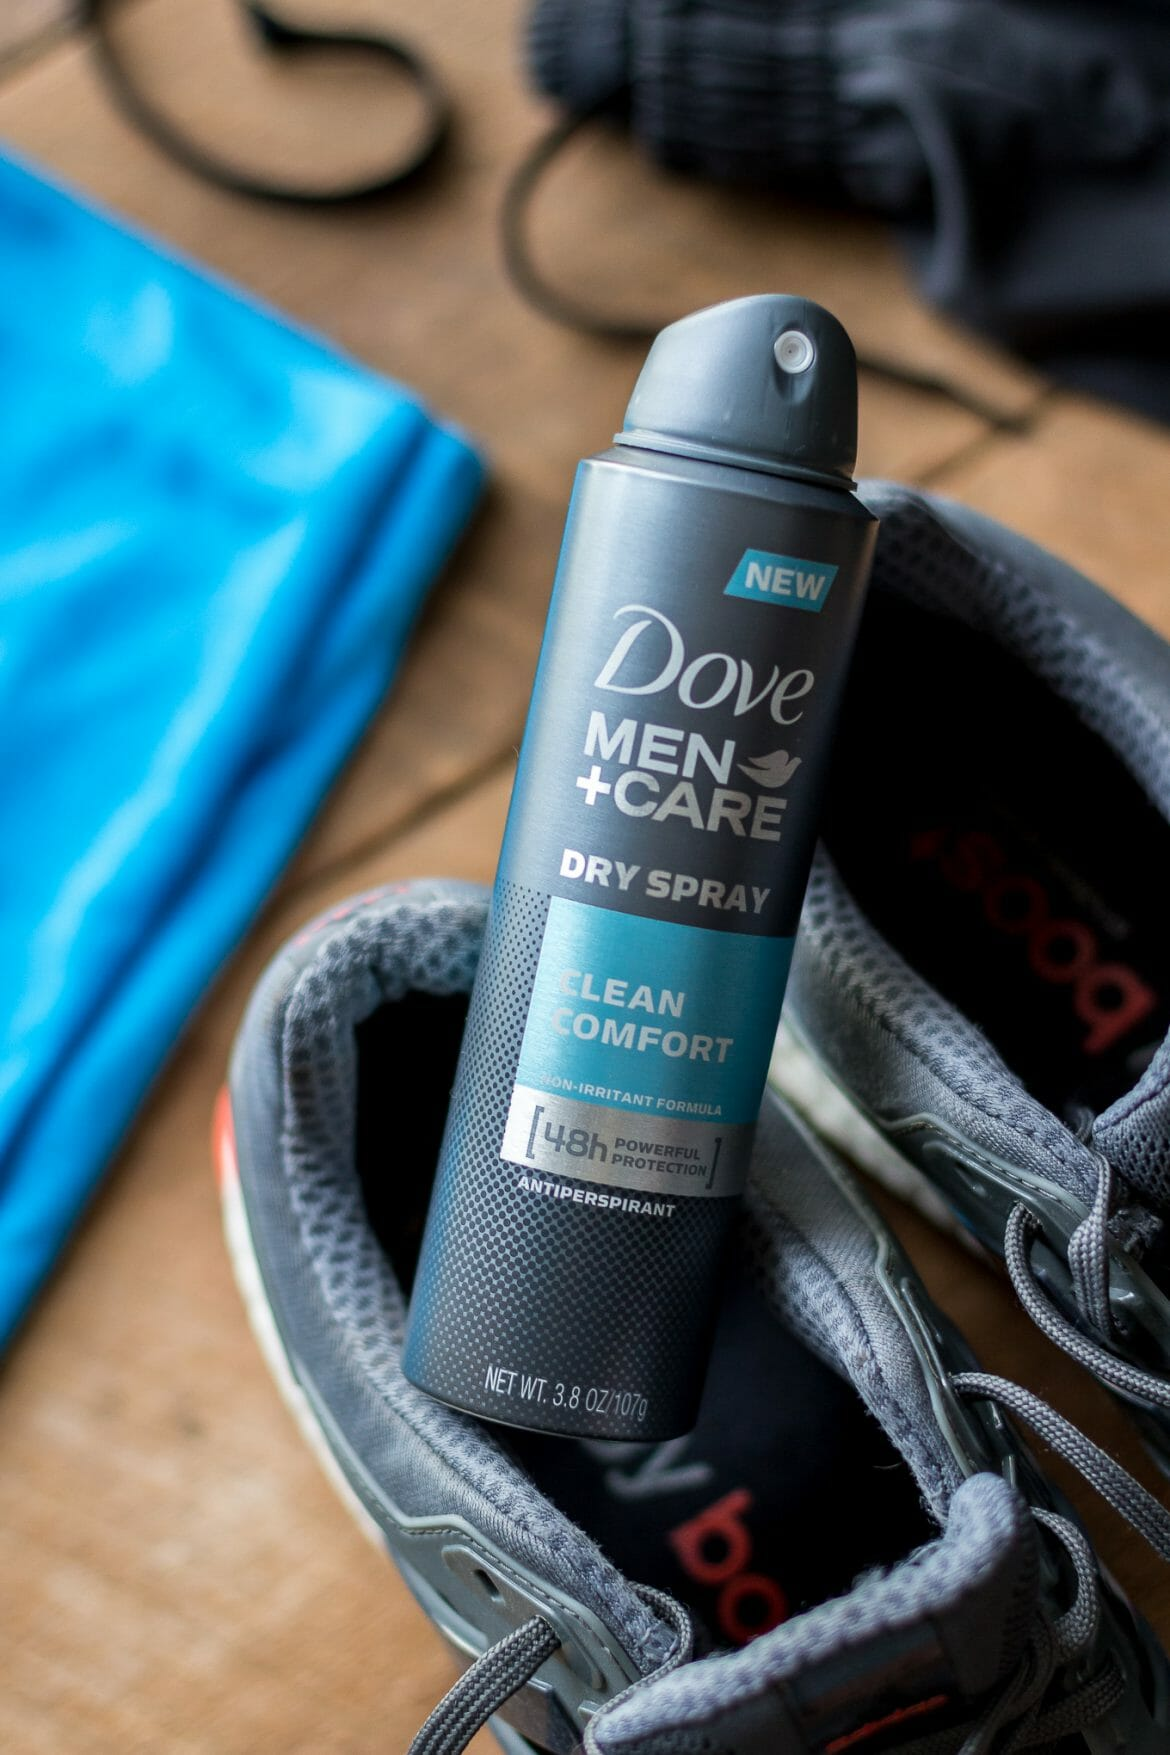 try dry, #trydry, running season, running season tips, what deodorant to wear during a run